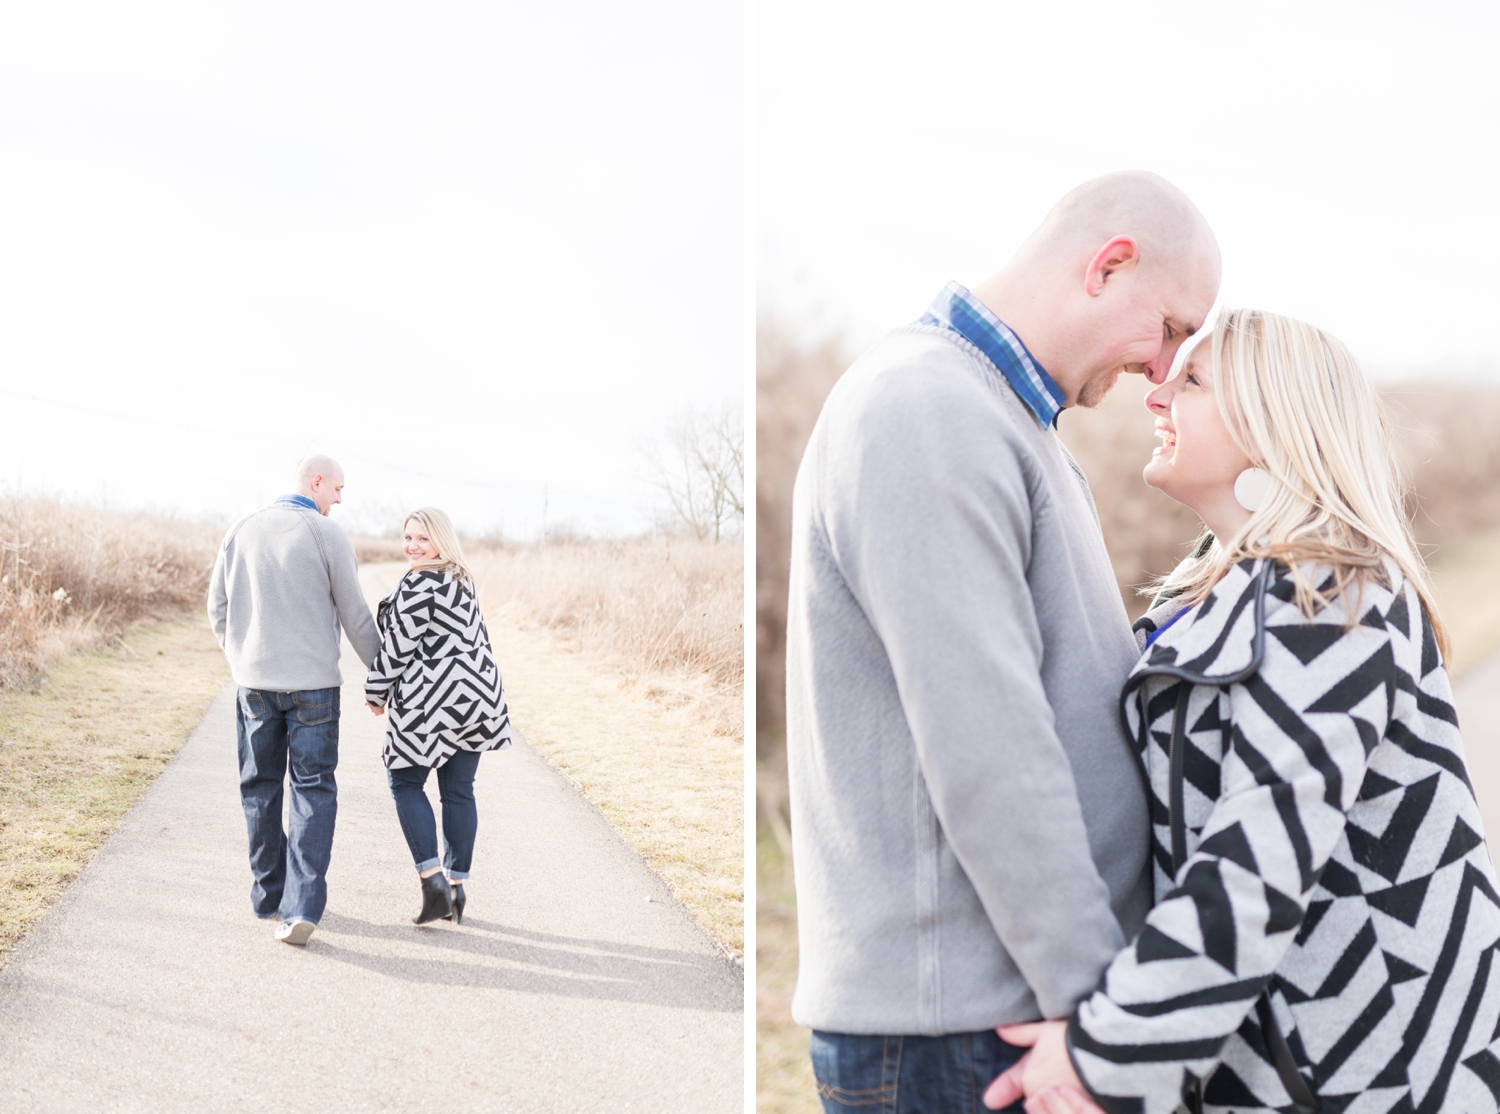 winter-engaged-couple-at-their-photo-session-at-the-scioto-audubon-park-near-grange-audubon-center-with-walkways-and-grass_0318